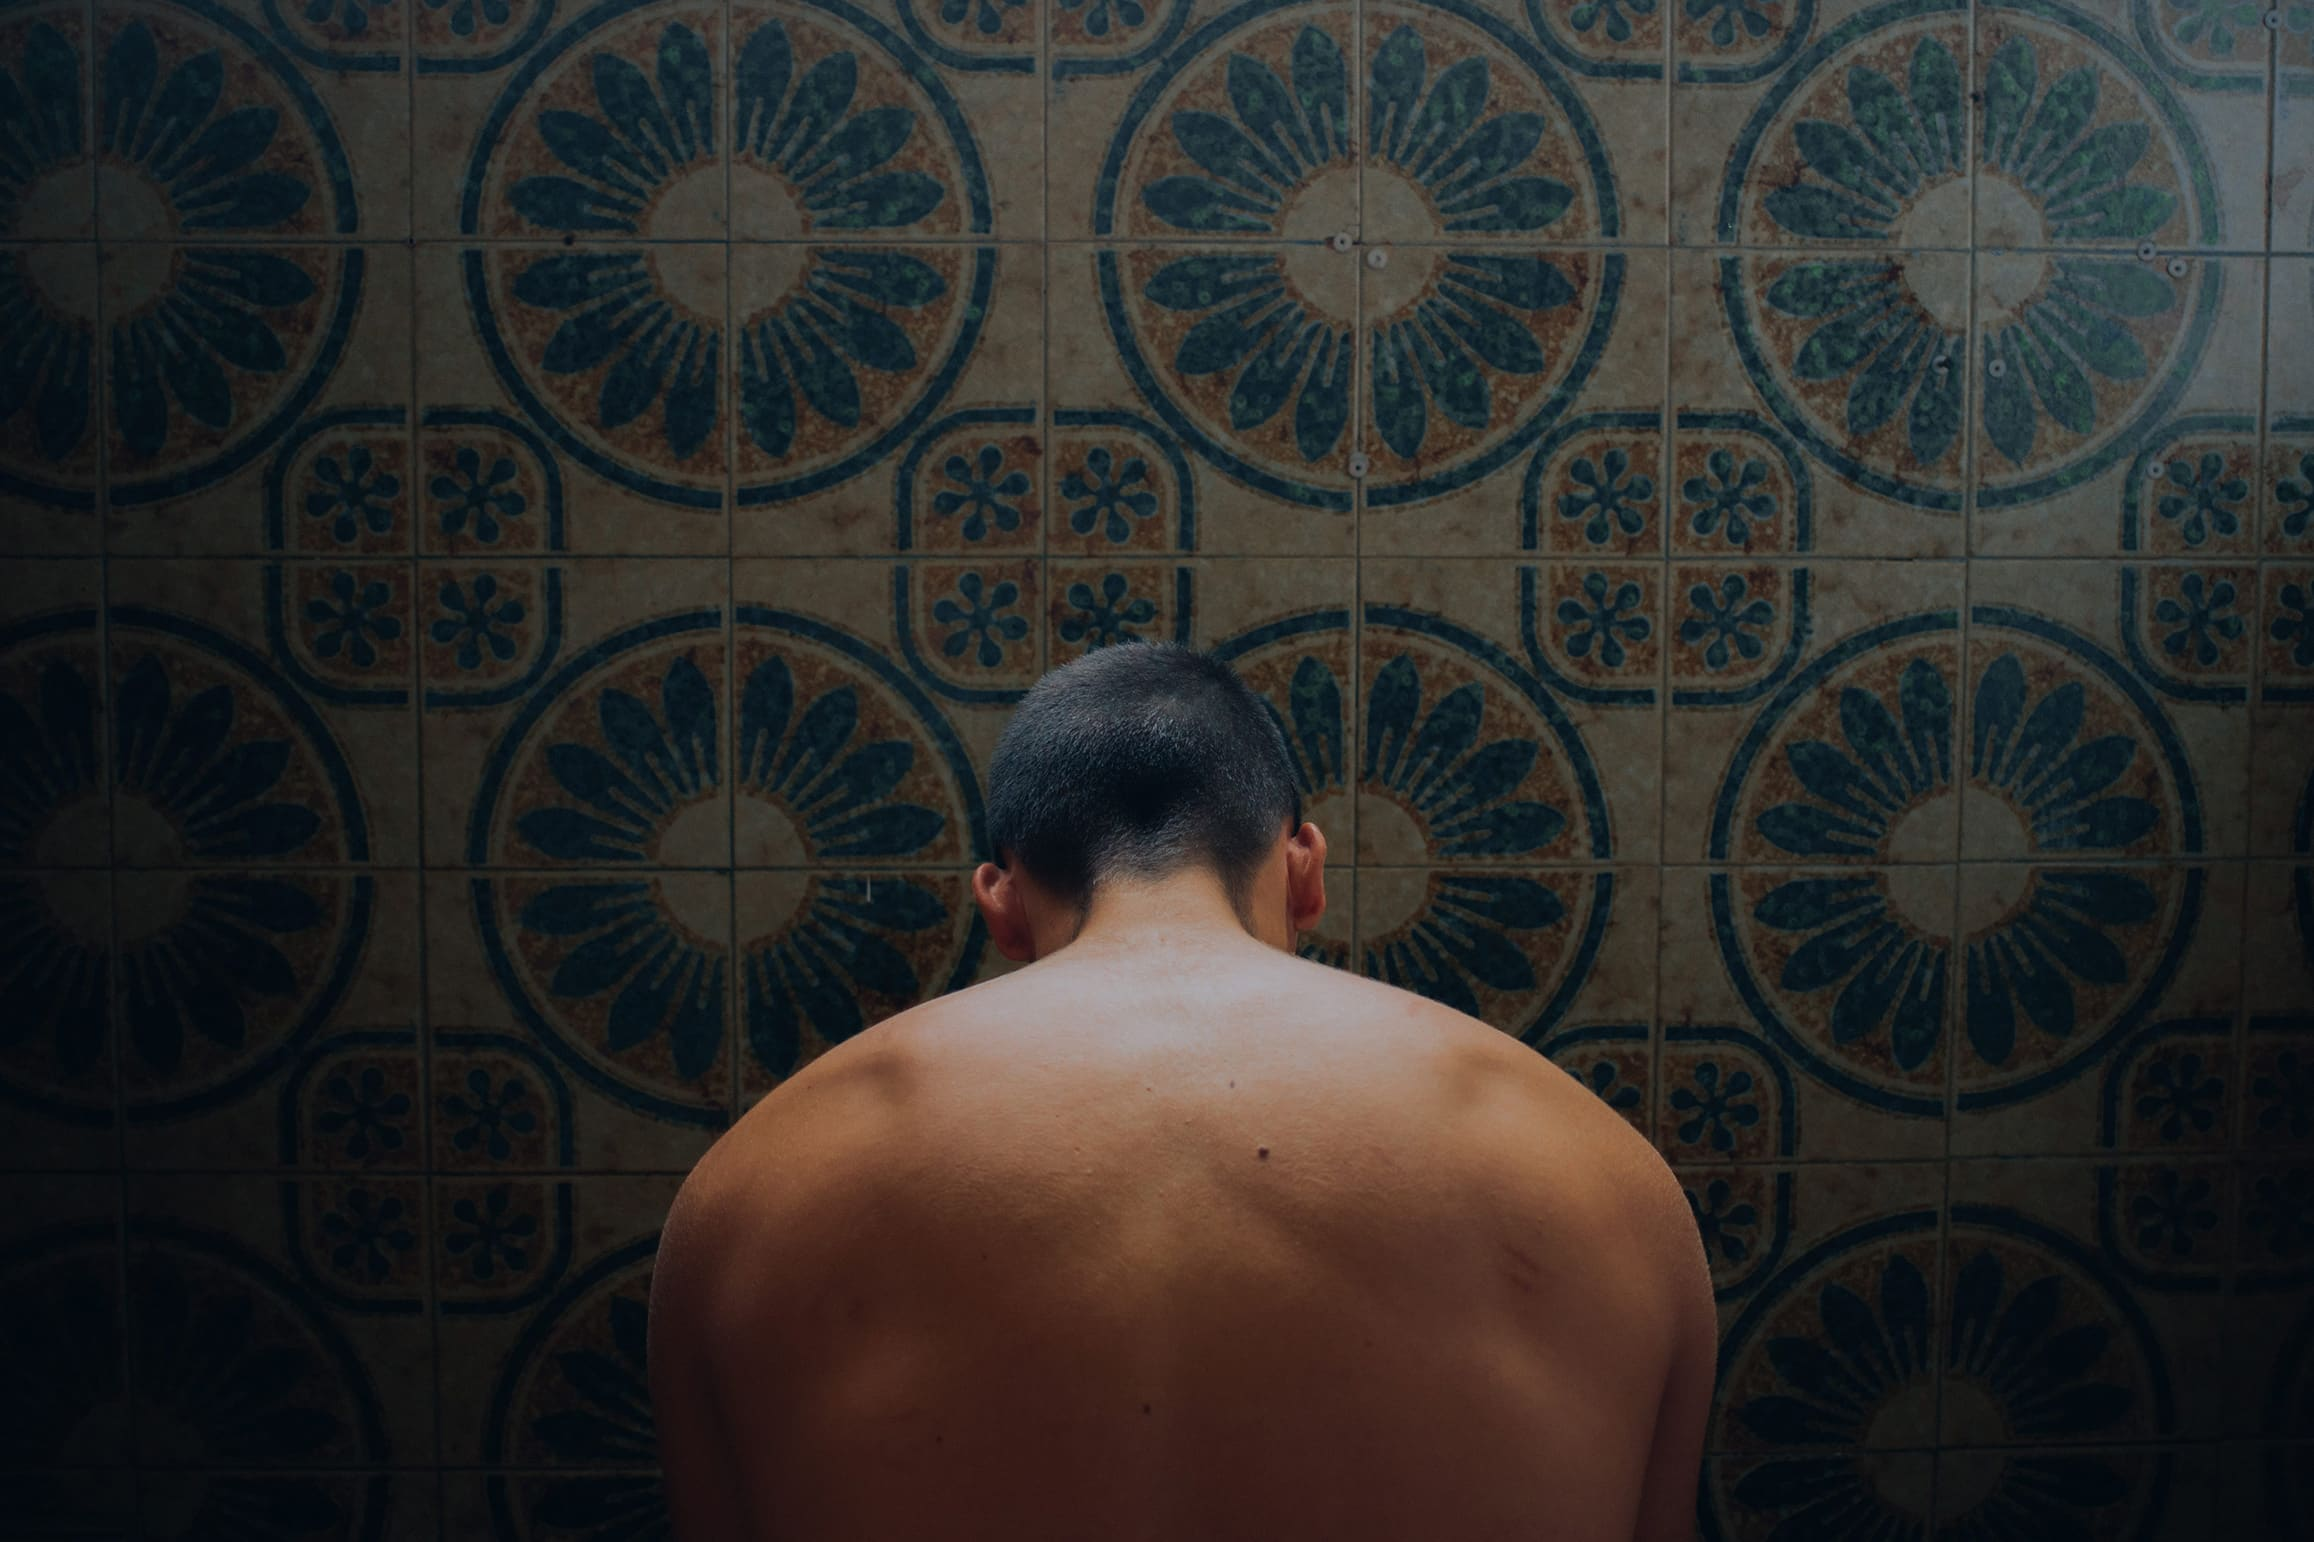 Portrait of young mans back with dark lighting stock photograph by Carmen Jiménez EyeEm